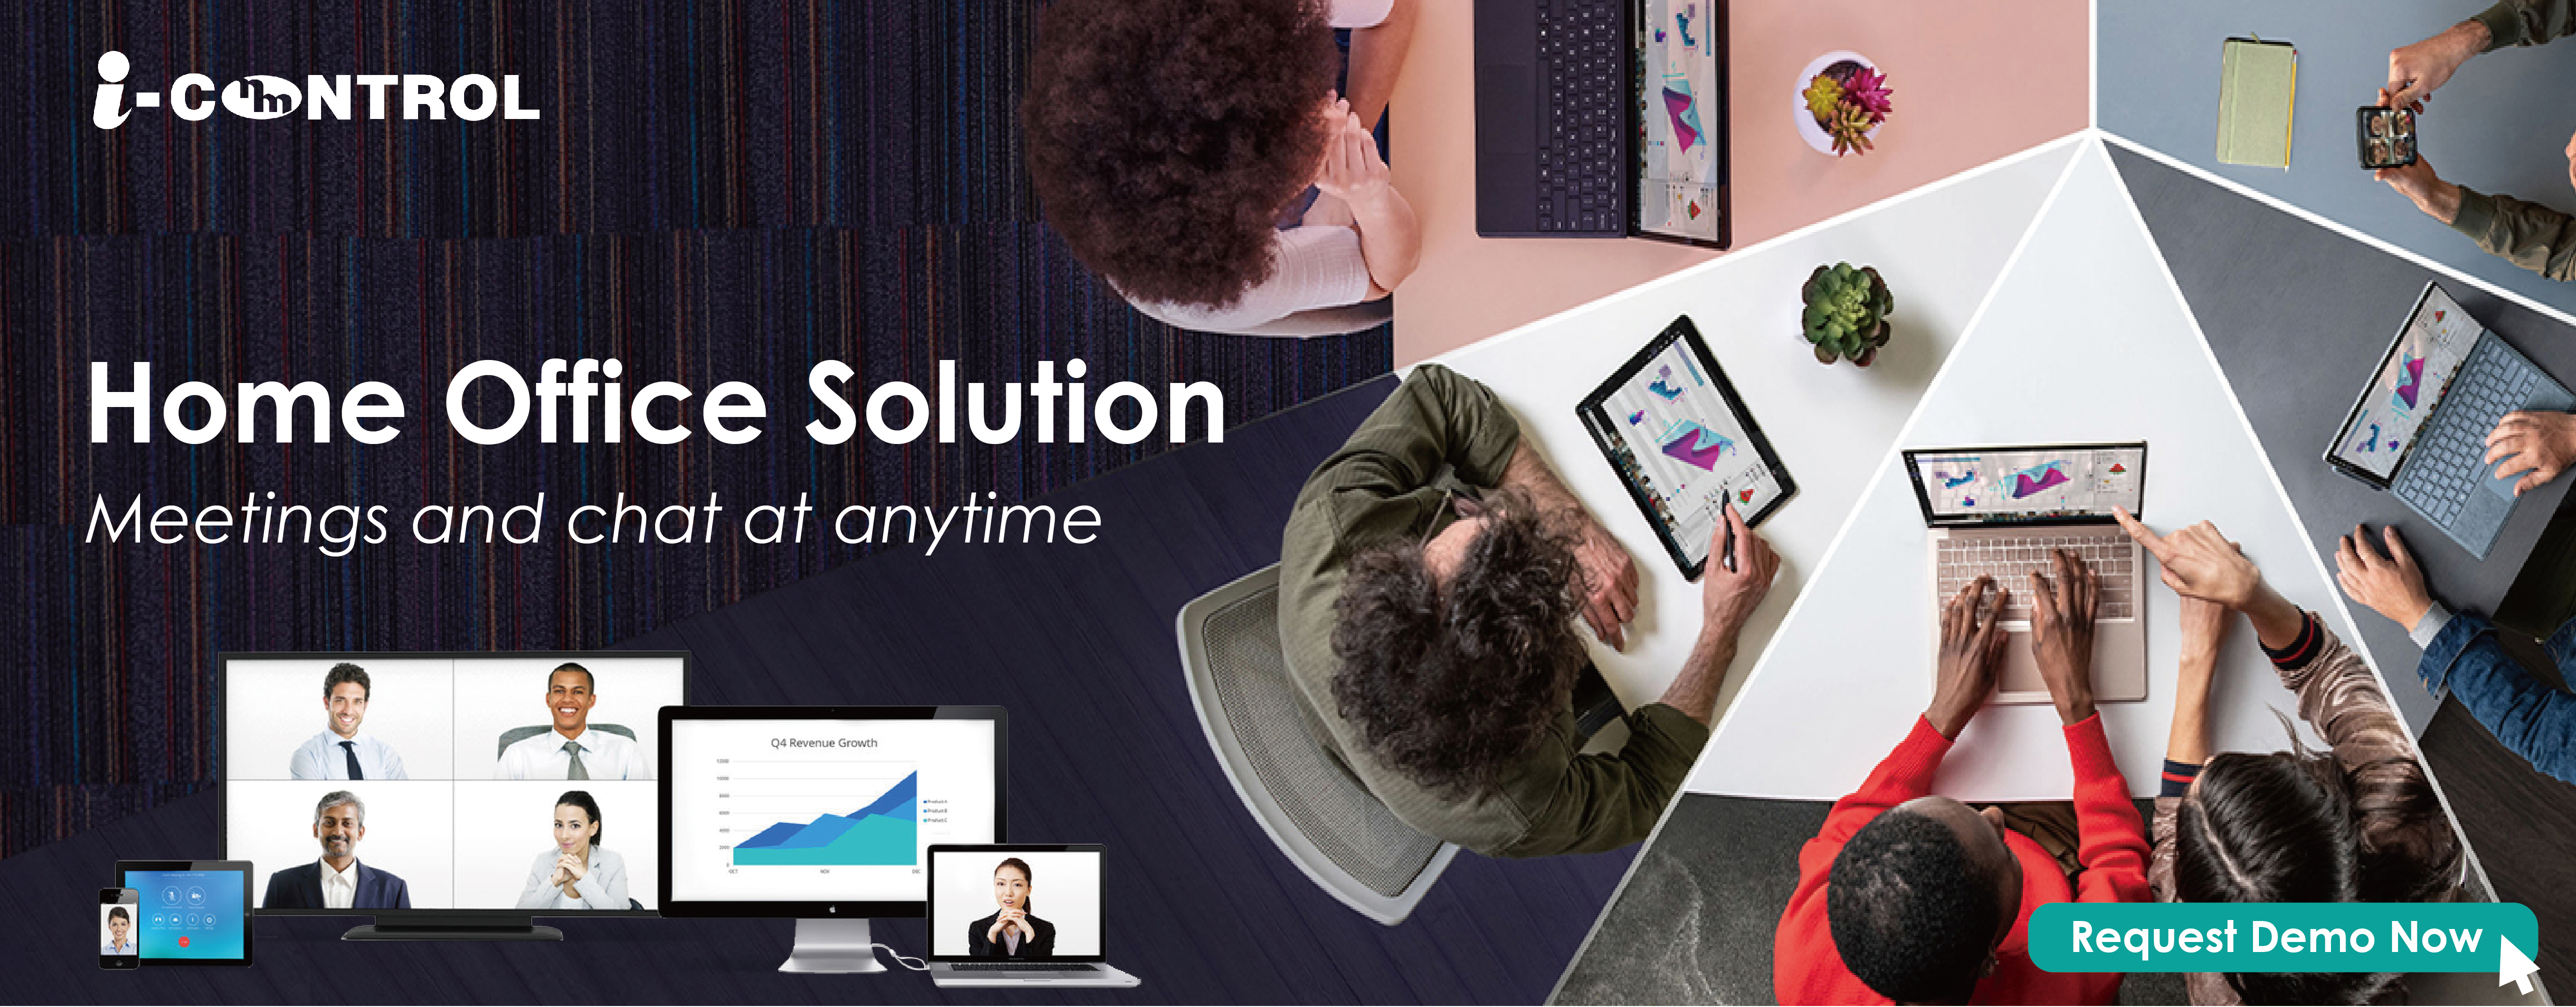 IC_Home-Office-Solution-_Web-banner_工作區域-1